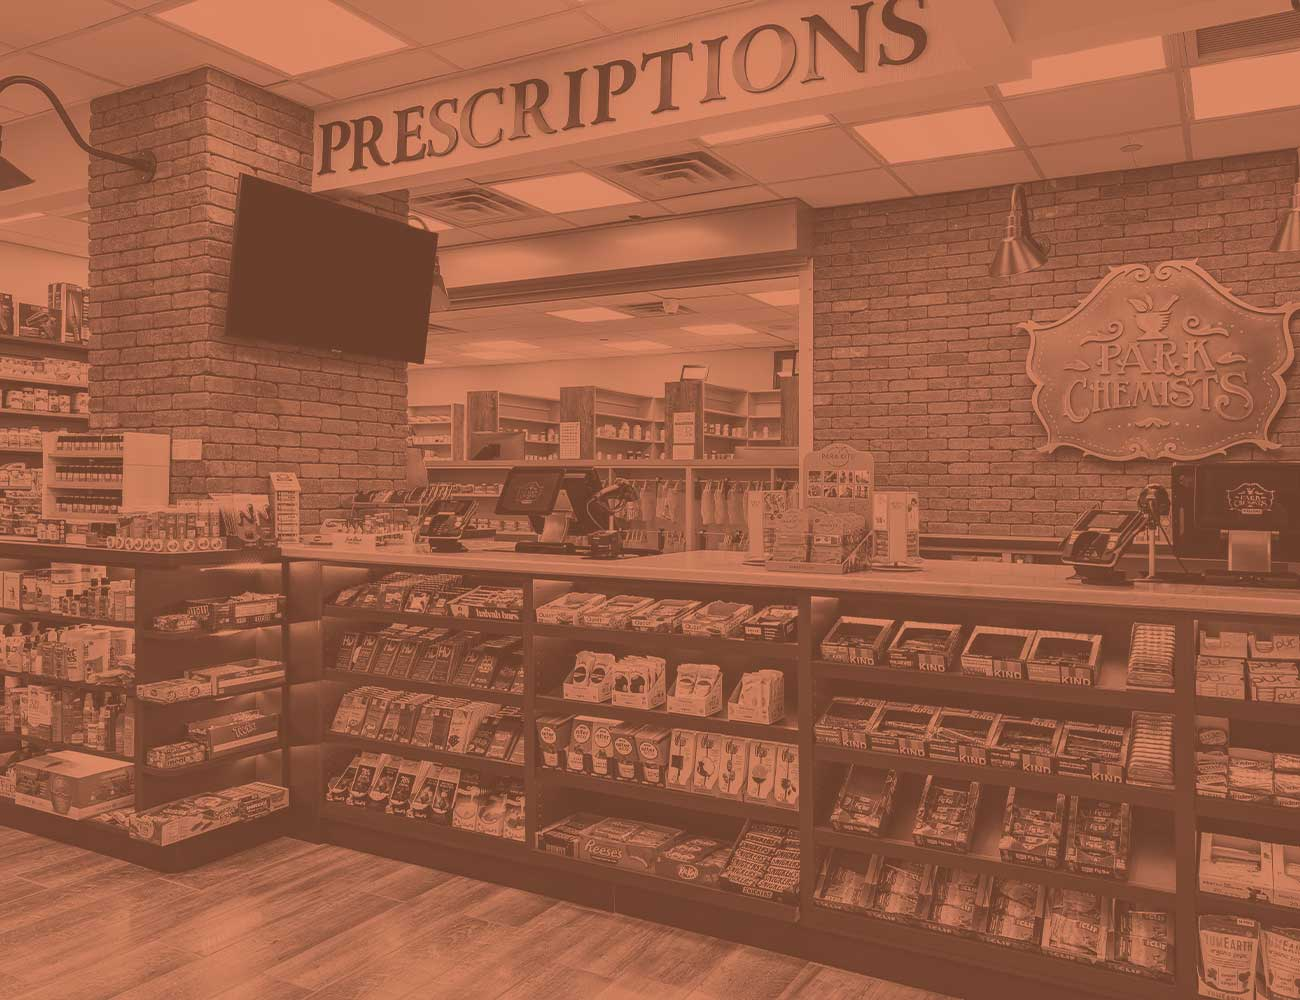 prescription checkout counter with candy on the shelves